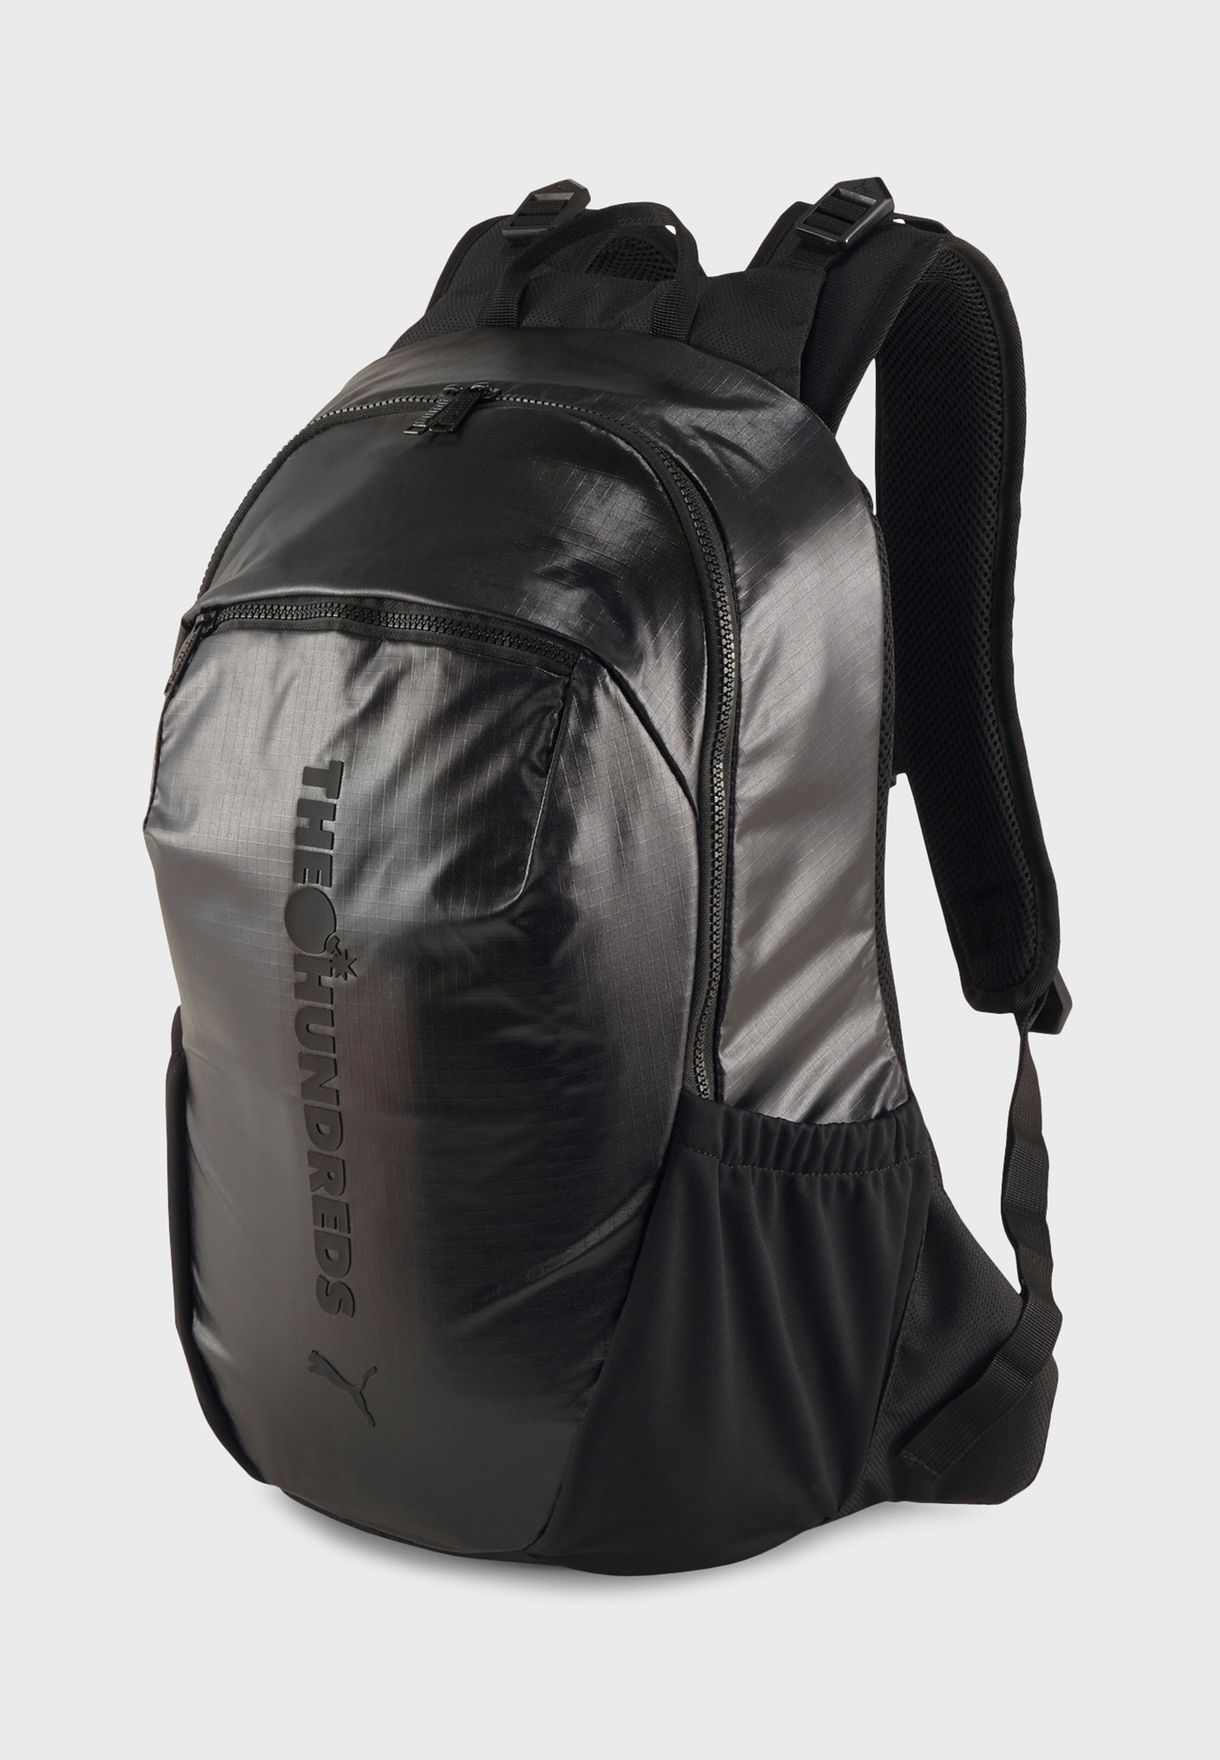 The Hundreds Backpack